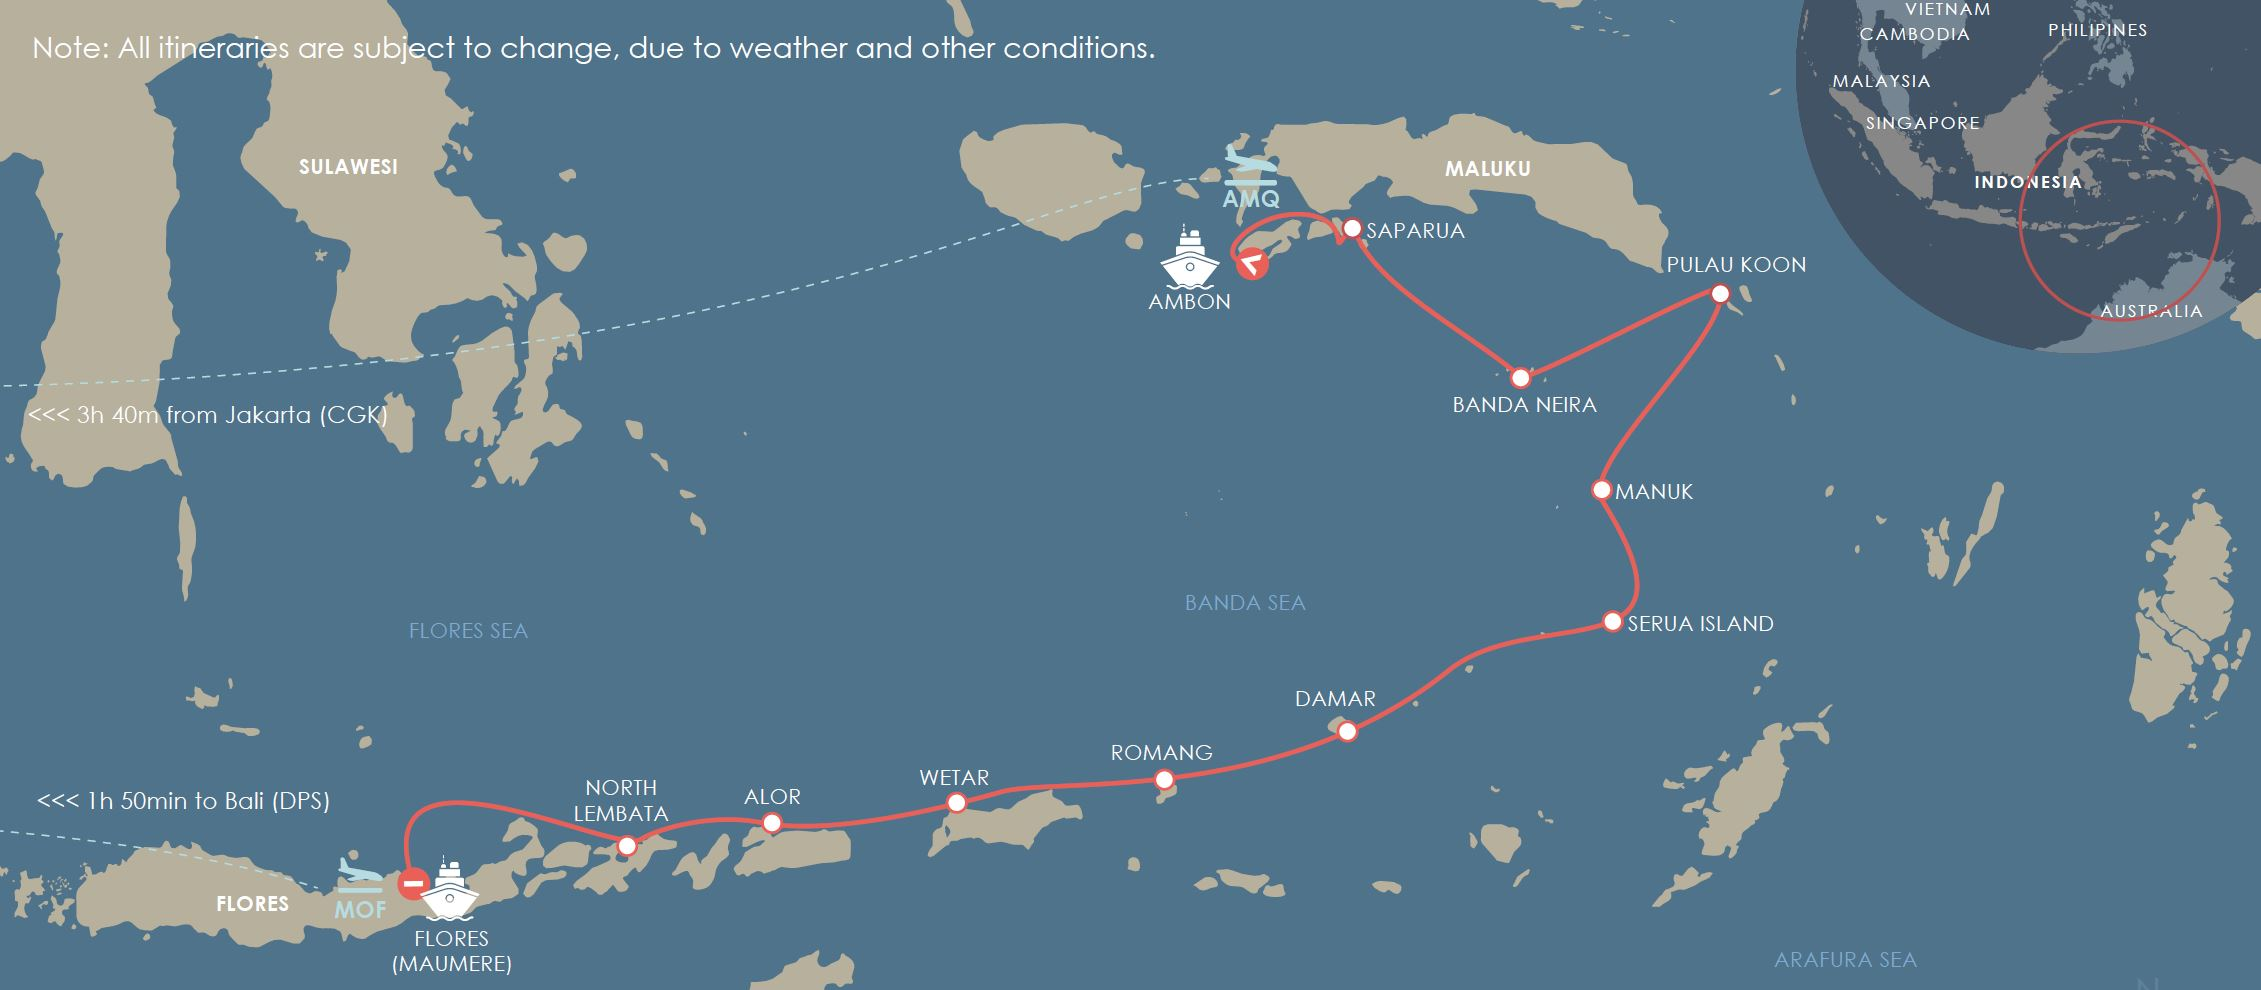 Spice Islands to Flores - Cruise to Indonesia